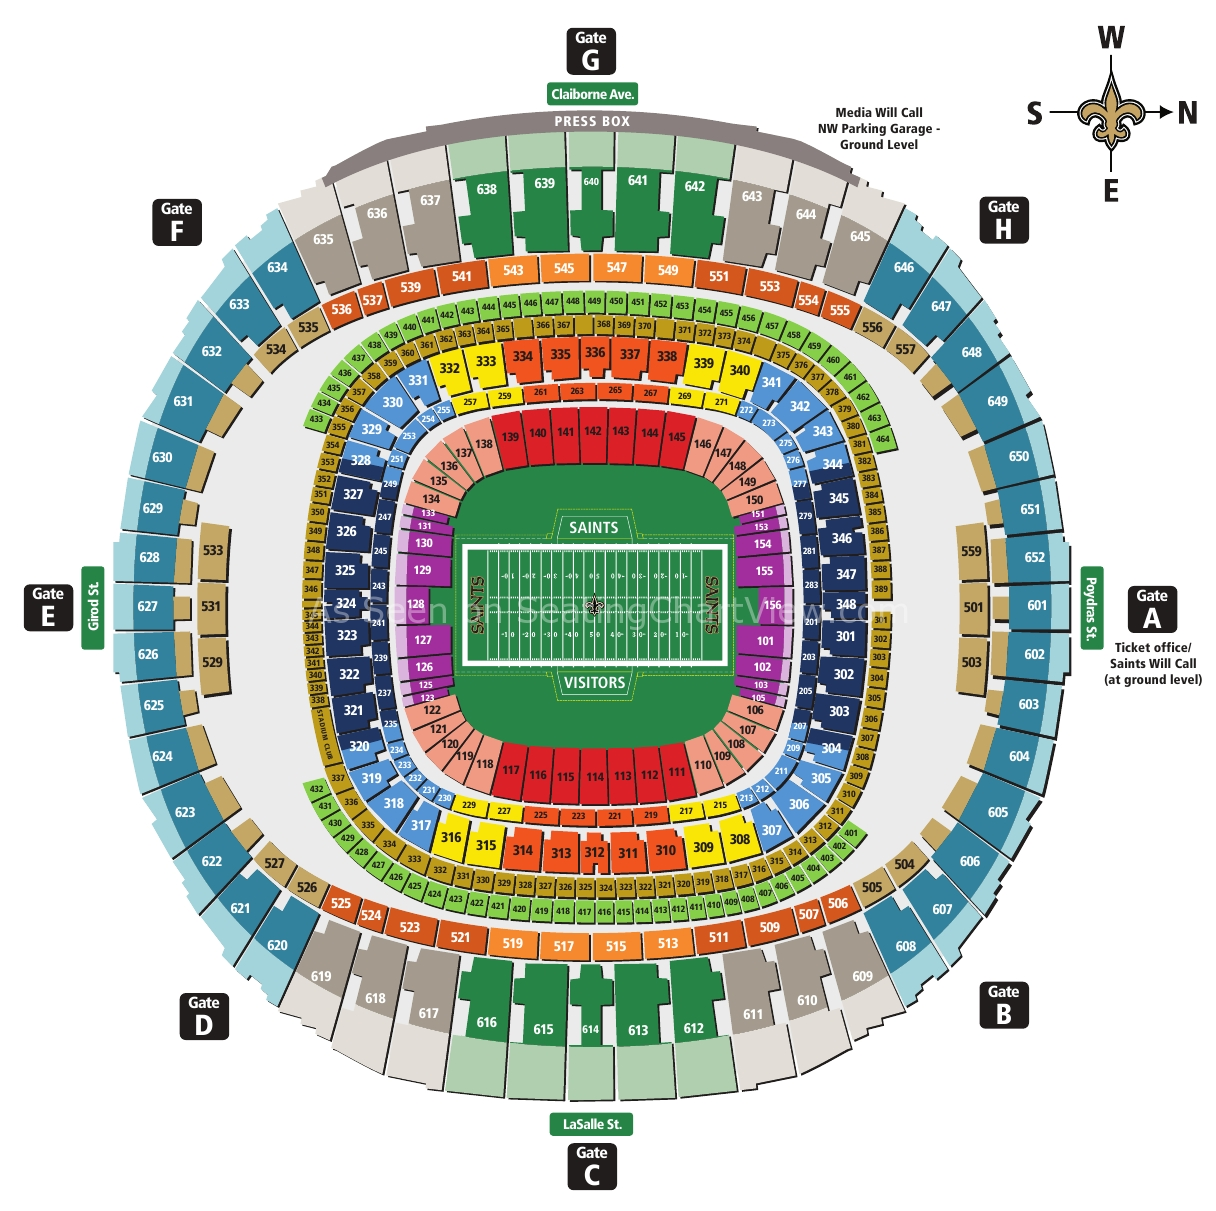 Mercedes-Benz Superdome, New Orleans La | Seating Chart View within Mercedes Benz Super Bowl Seating Chart